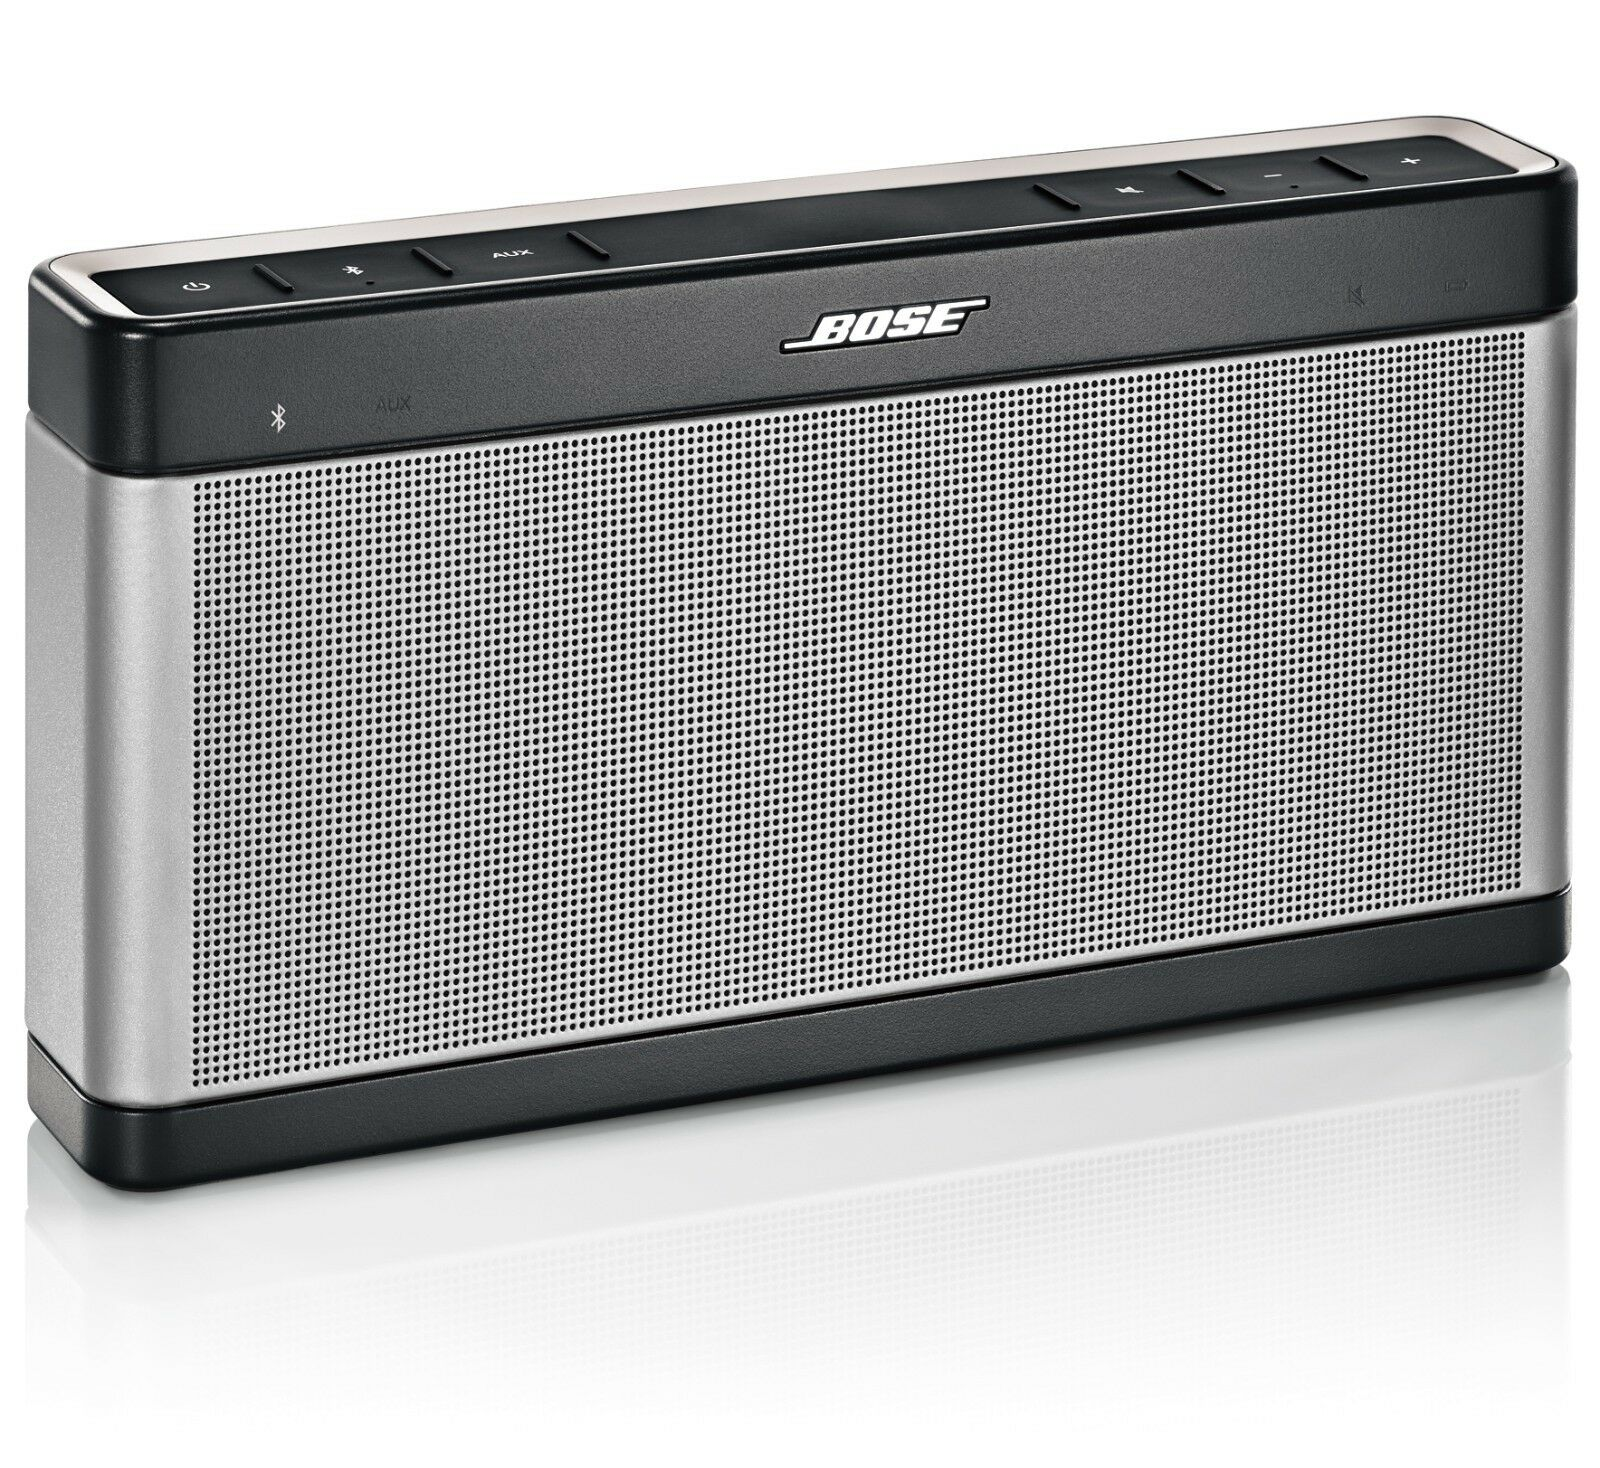 NEW BOSE SOUNDLINK BLUETOOTH SPEAKER SERIES III 3-WIRELESS PORTABLE MINI MOBILE